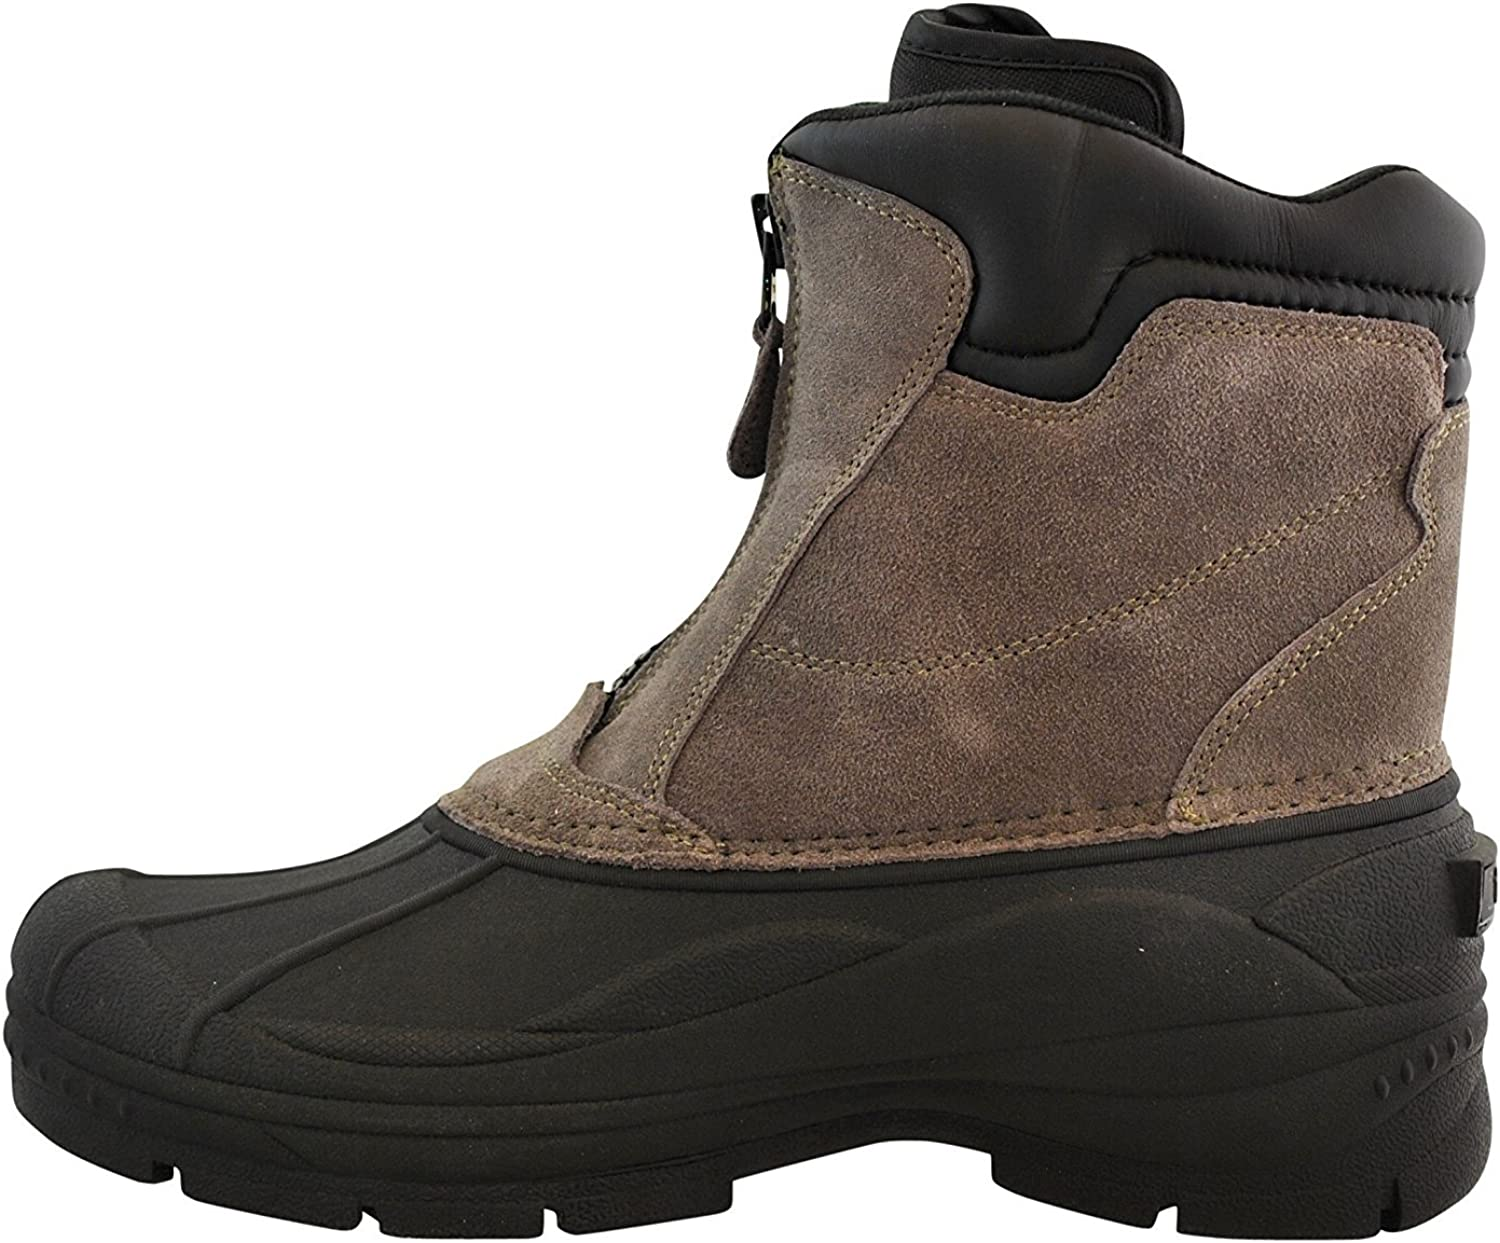 totes Mens Tornado Center Zip Leather Snow Boot